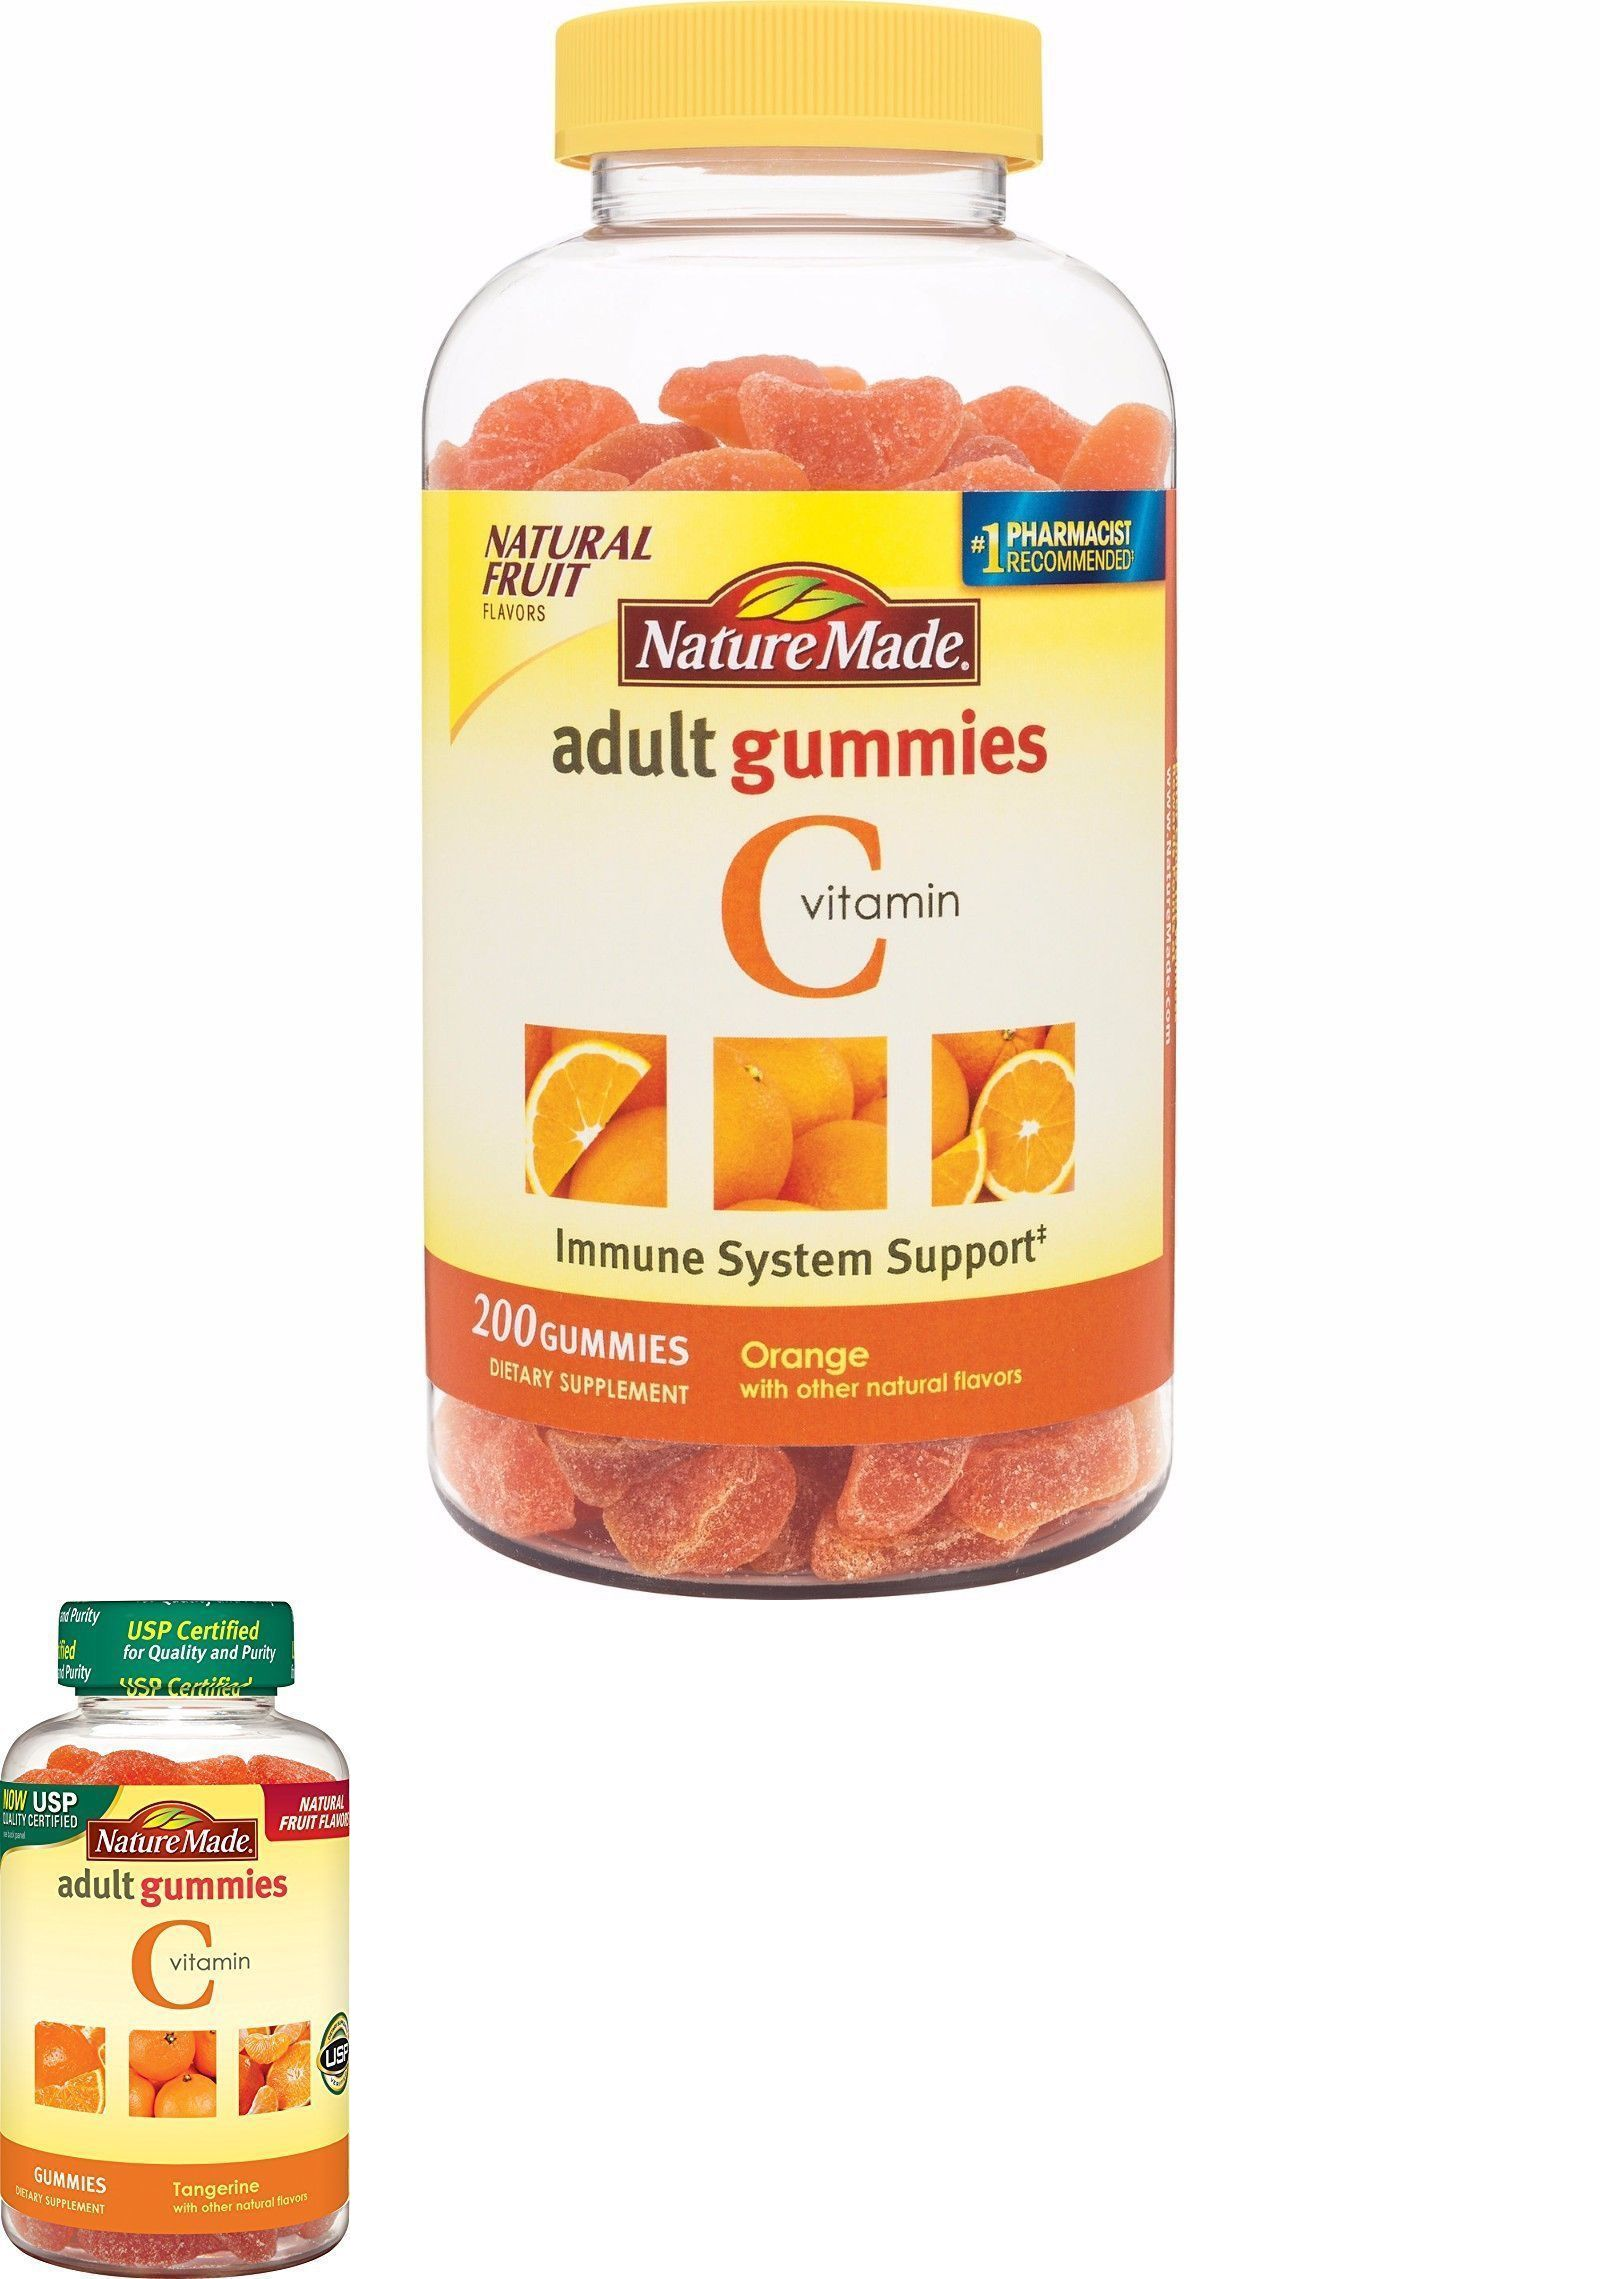 Nature Made Vitamin C Adult Gummies Orange Flavor Supports Immune Triple Flex Strength 170 Caplets Vitamins And Minerals 11776 Health 200 Ct Buy It Now Only 1299 On Ebay